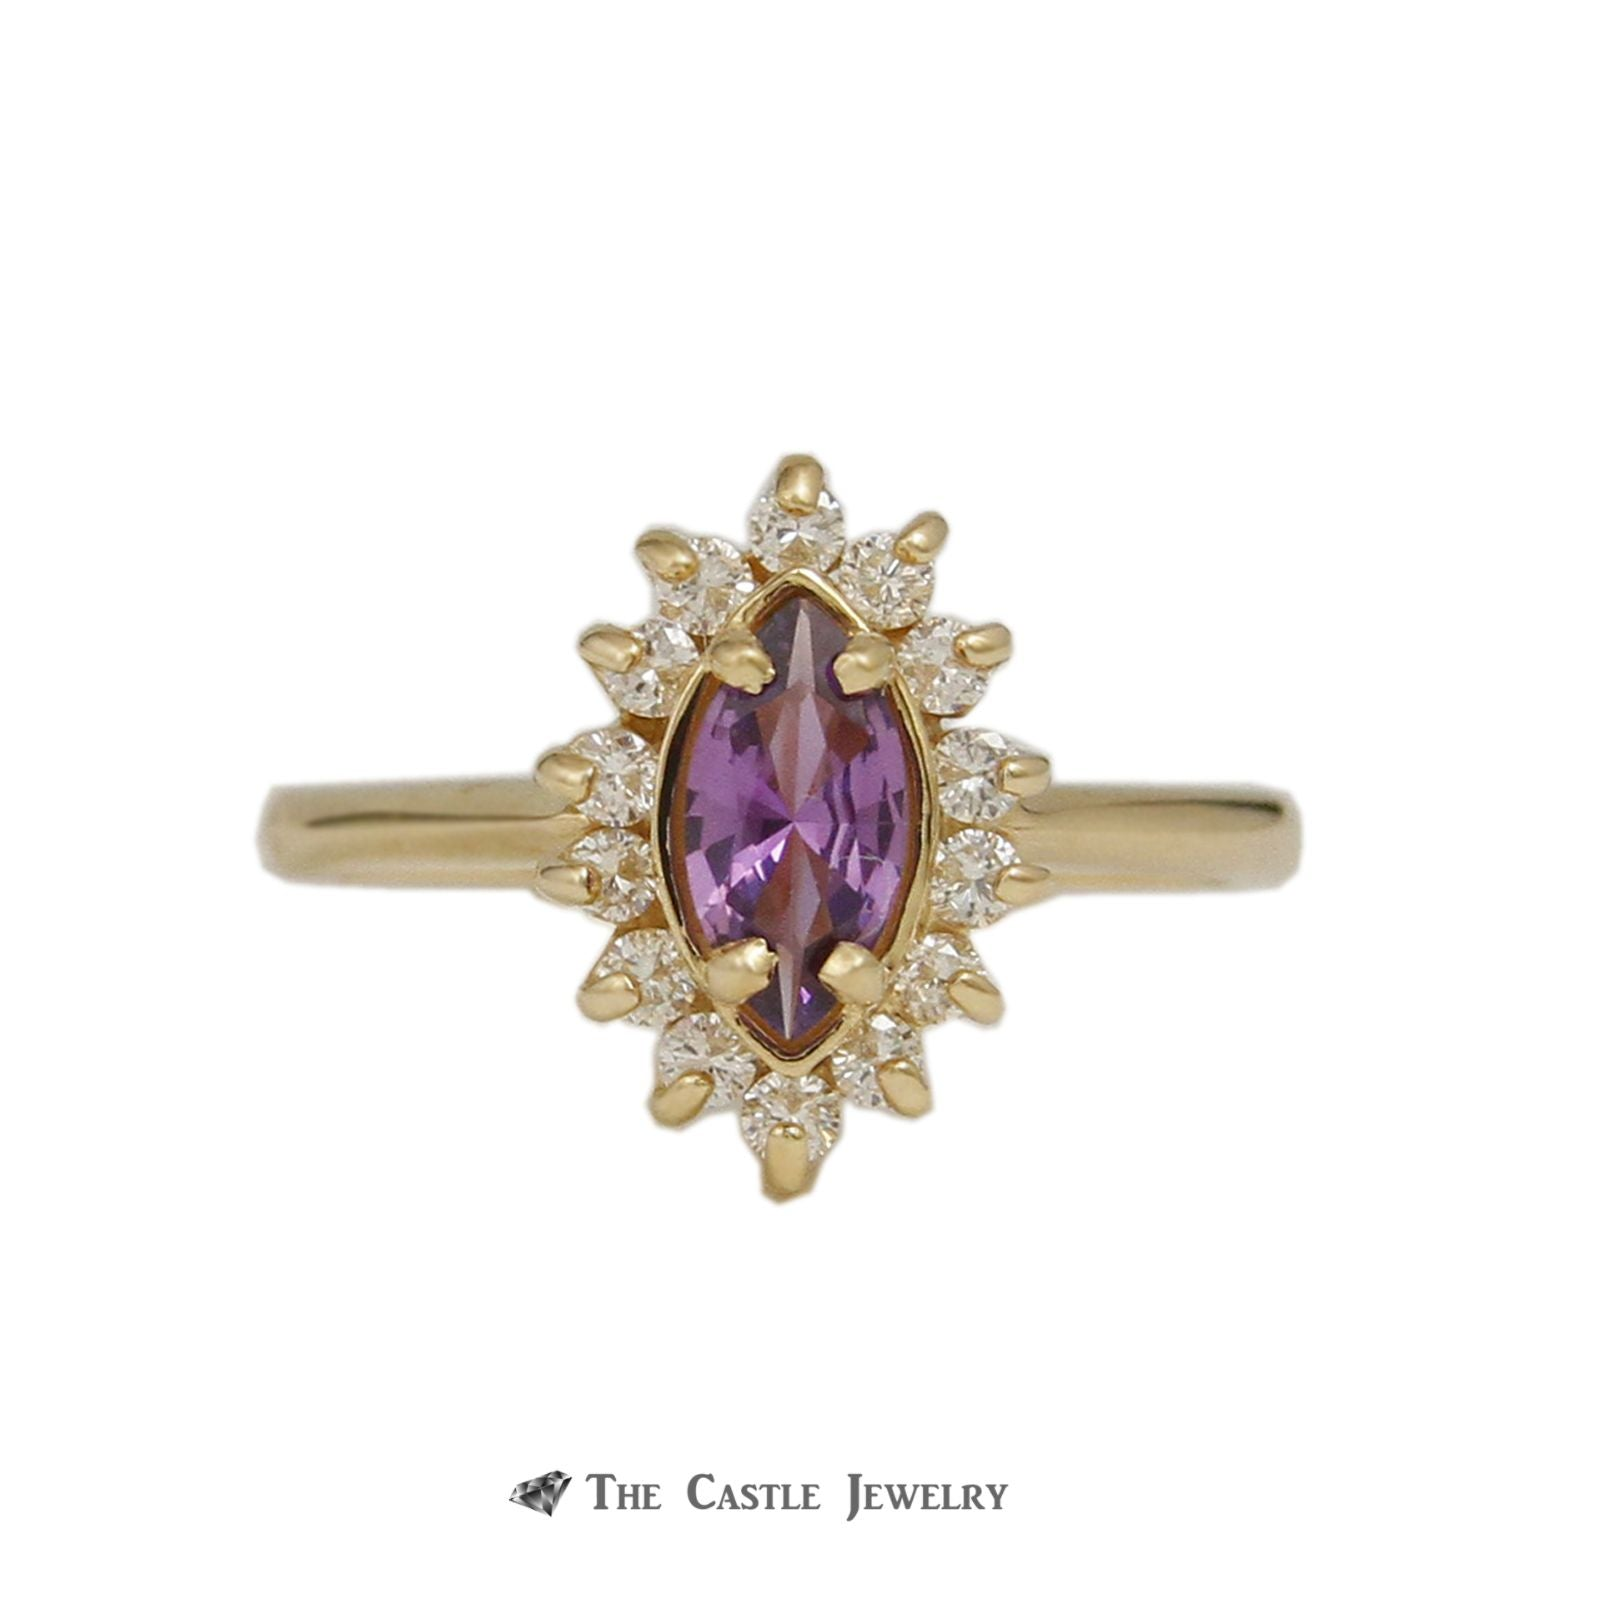 Marquise Cut Amethyst Ring with .25cttw Diamond Bezel in 14K Yellow Gold